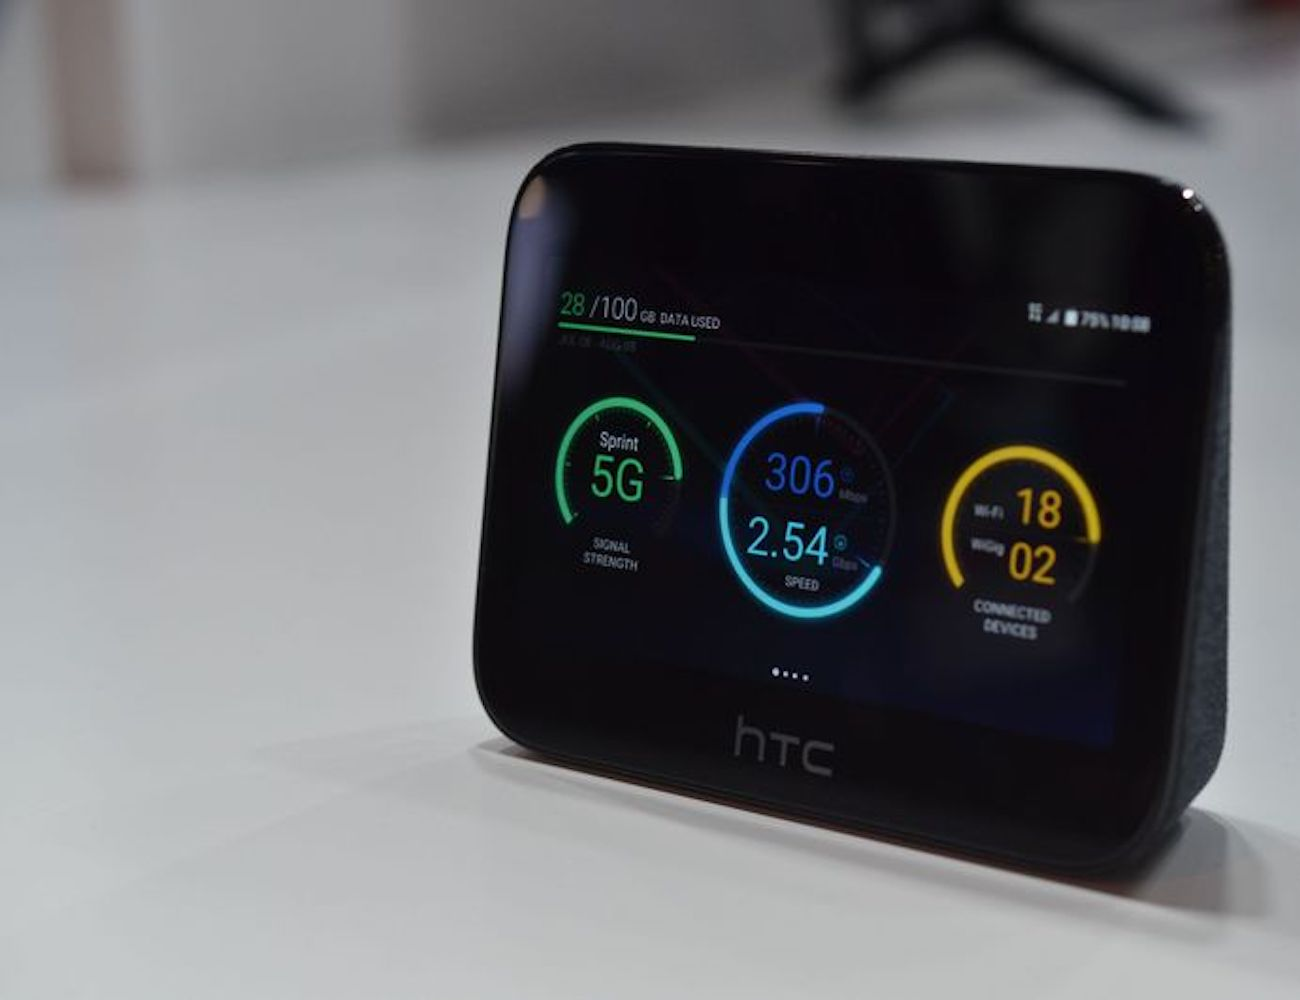 HTC 5G Hub Home Media Center helps you stream serves as a 5G hotspot